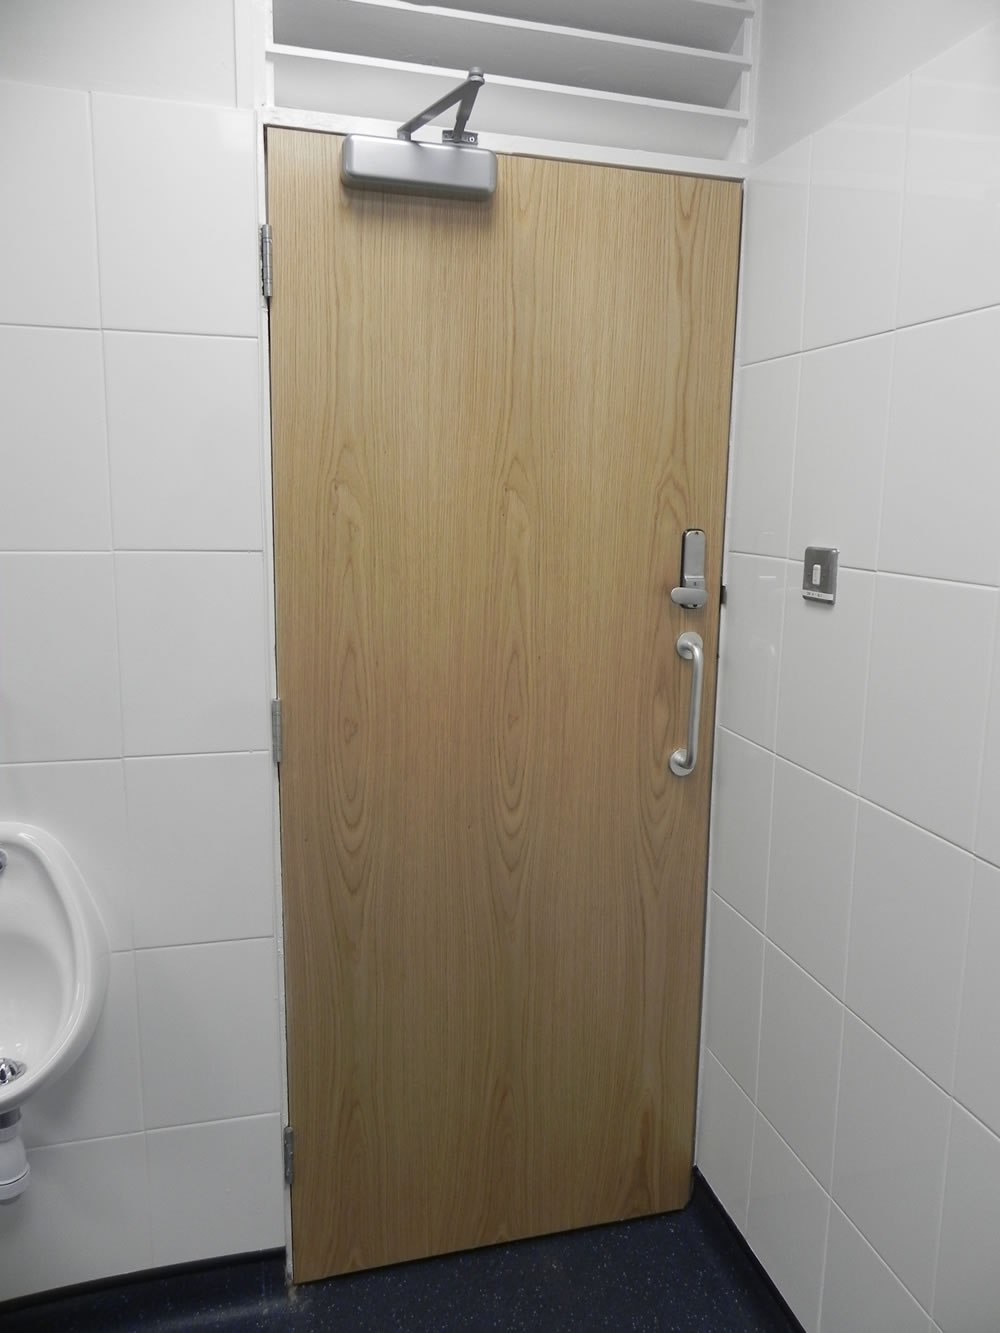 New Toilet Entrance Doors Commercial Refurbishment Office - Commercial bathroom entry doors